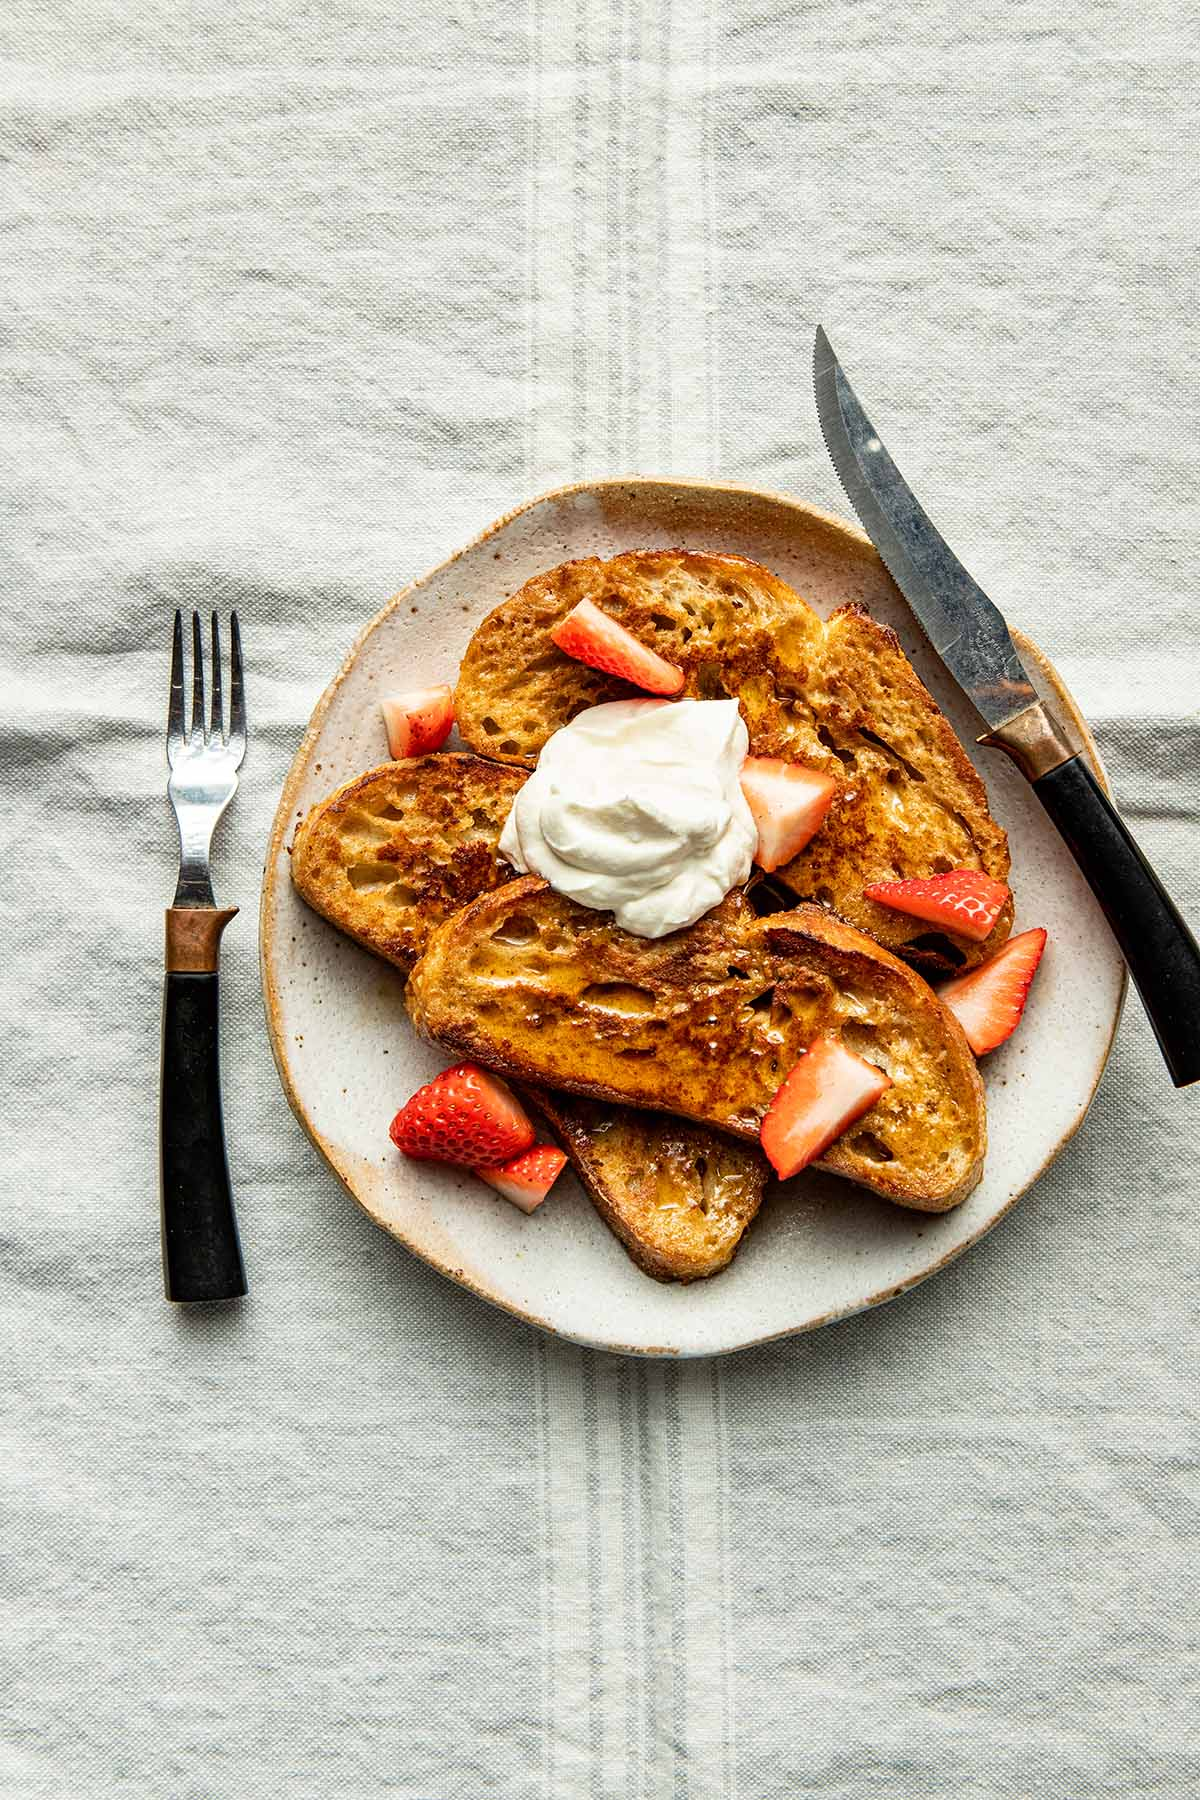 Souroudhg French toast on a plate with strawberries, maple syrup, whipped cream, and a knife and fork.